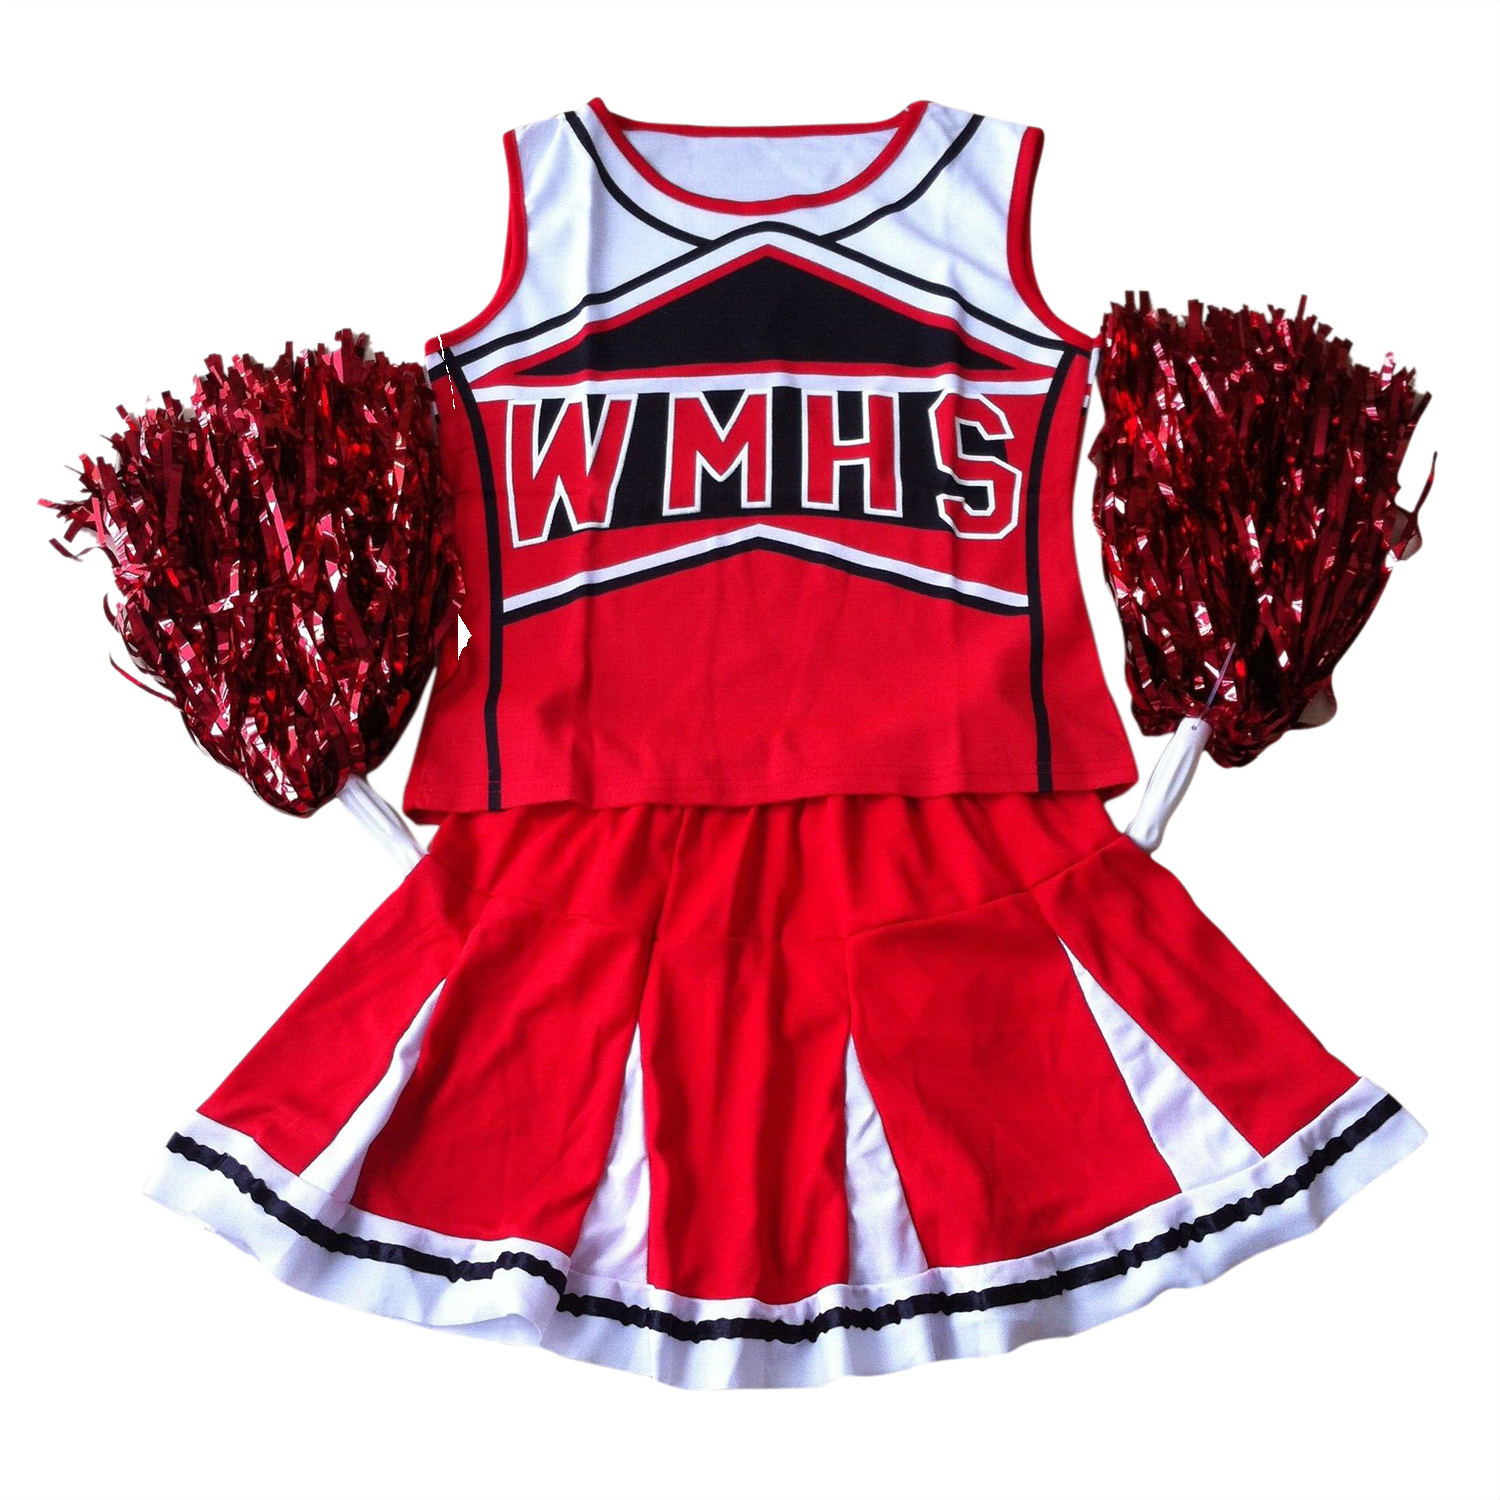 Tank top Petticoat Pom cheer leaders M (34-36) 2 piece suit new red costume